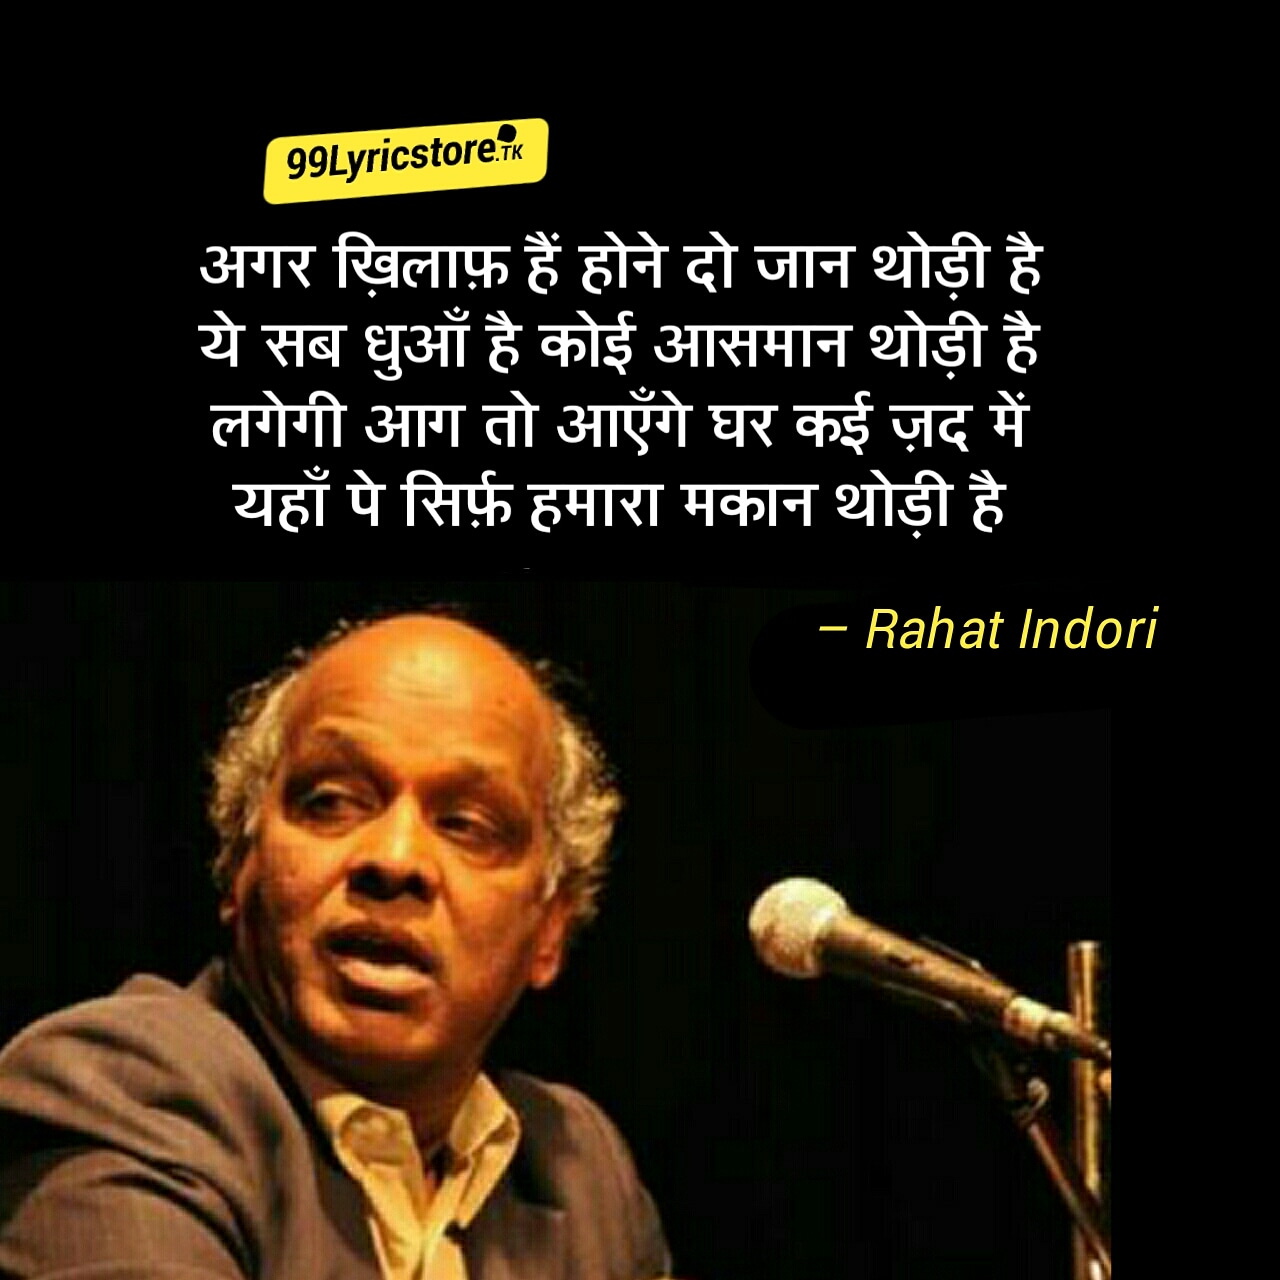 Agar Khilaaf Hai Hone Do Jaan Thodi Hai' written and performed by Rahat Indori. This poetry is best Ghazal and Shayari of Rahat Indori